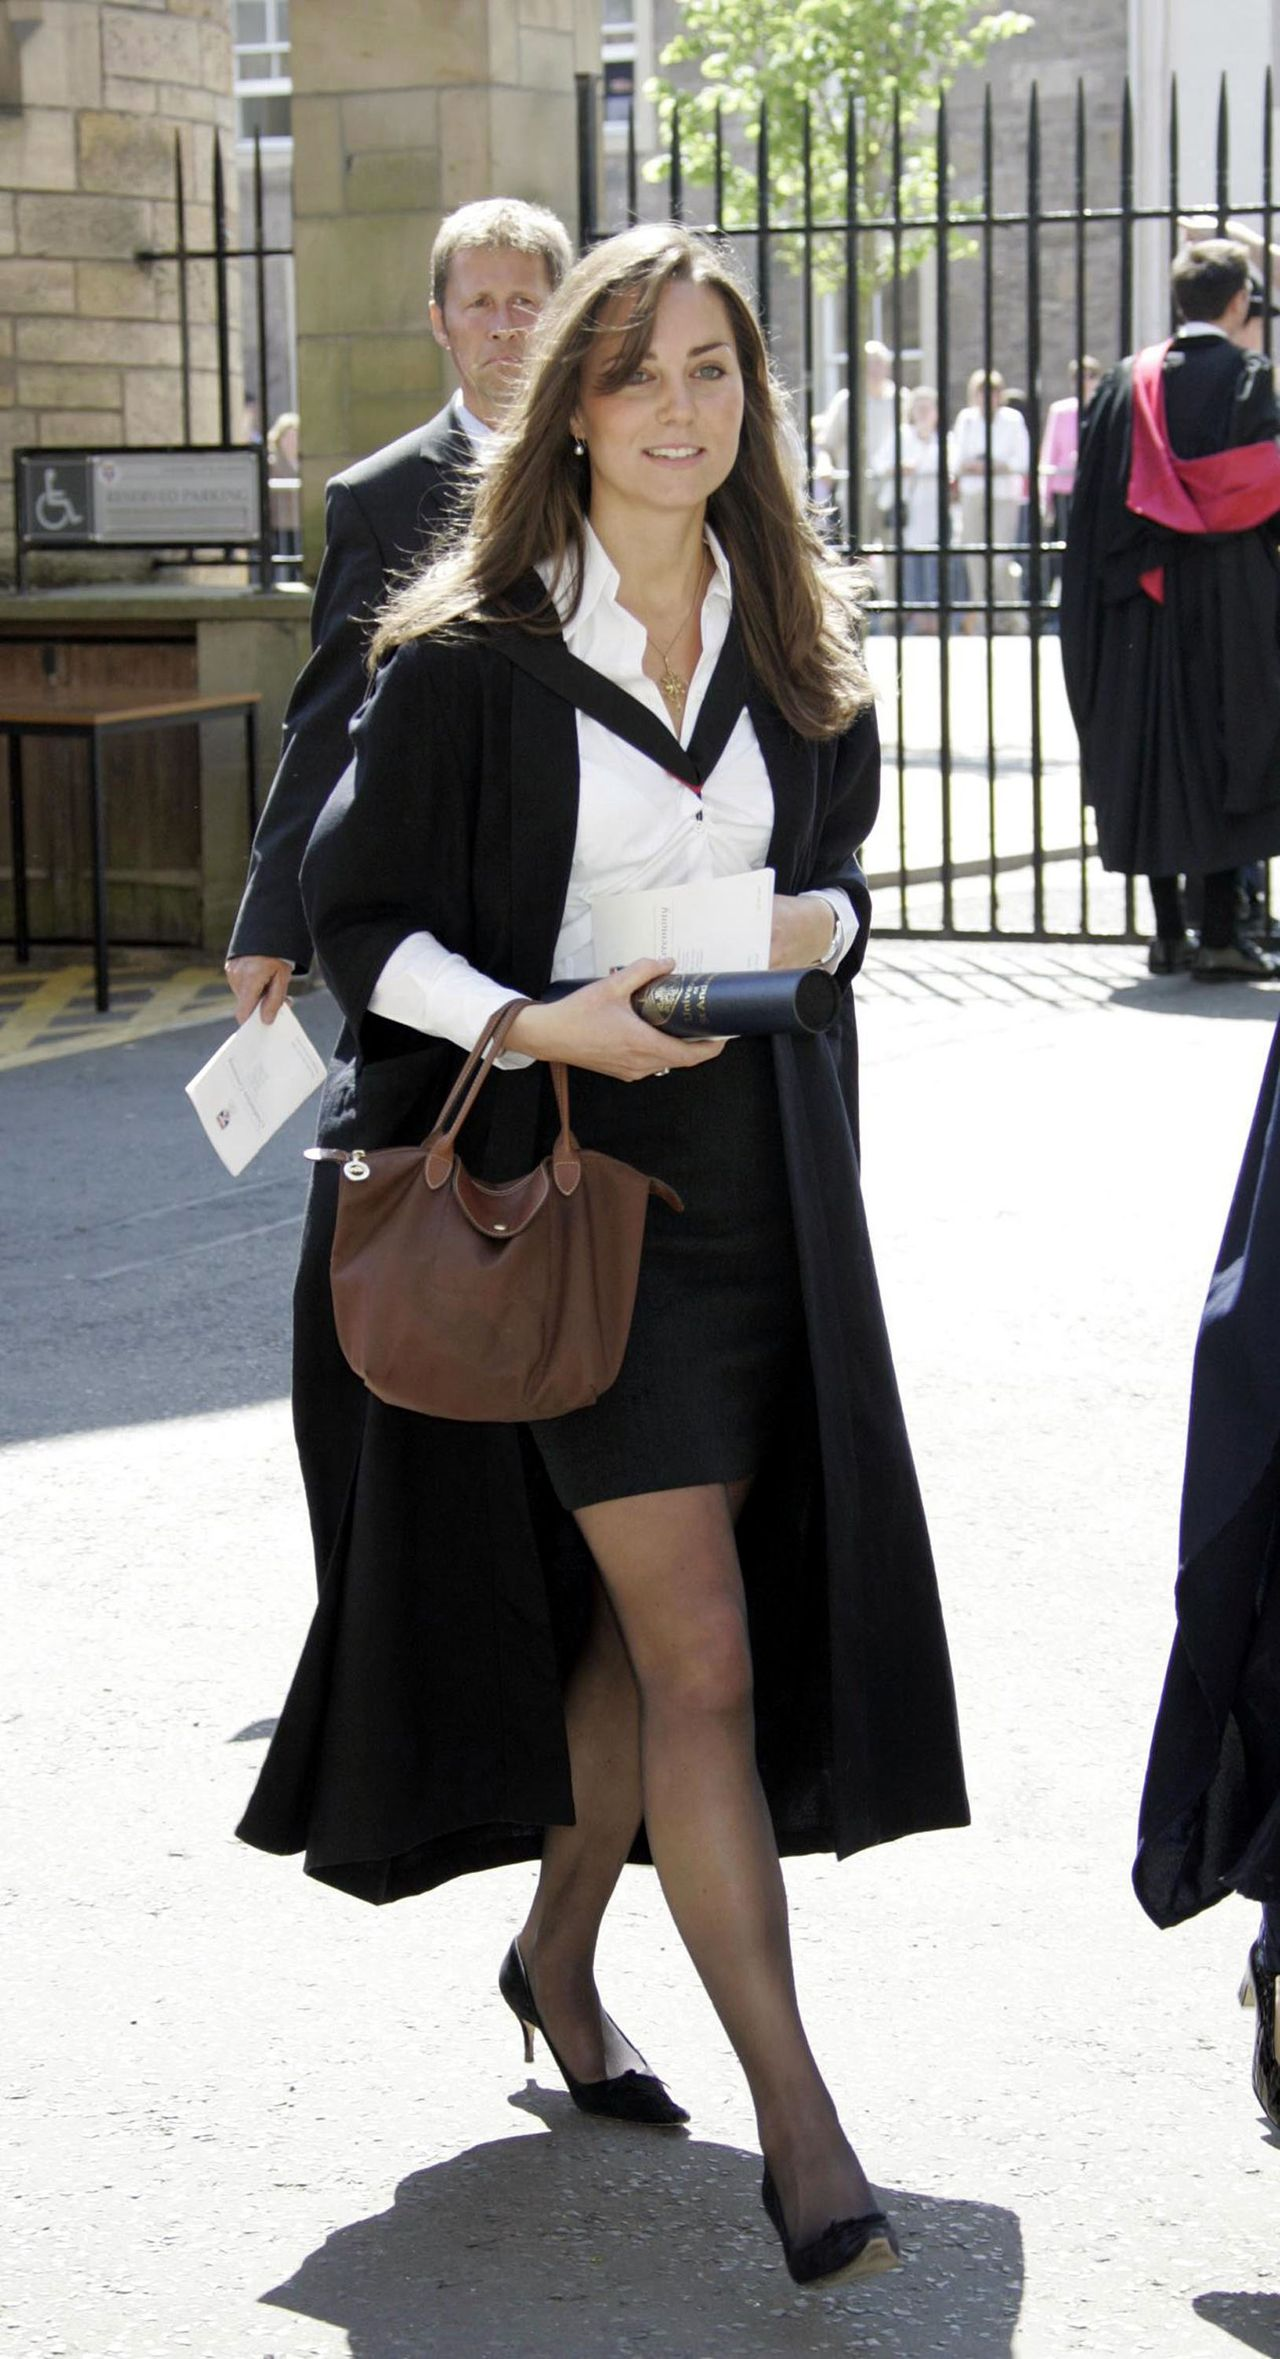 fd9e639a7e345 23 June 2005 - Kate And William s Graduation. Carrying Longchamp  Le Pliage   small tote in brown